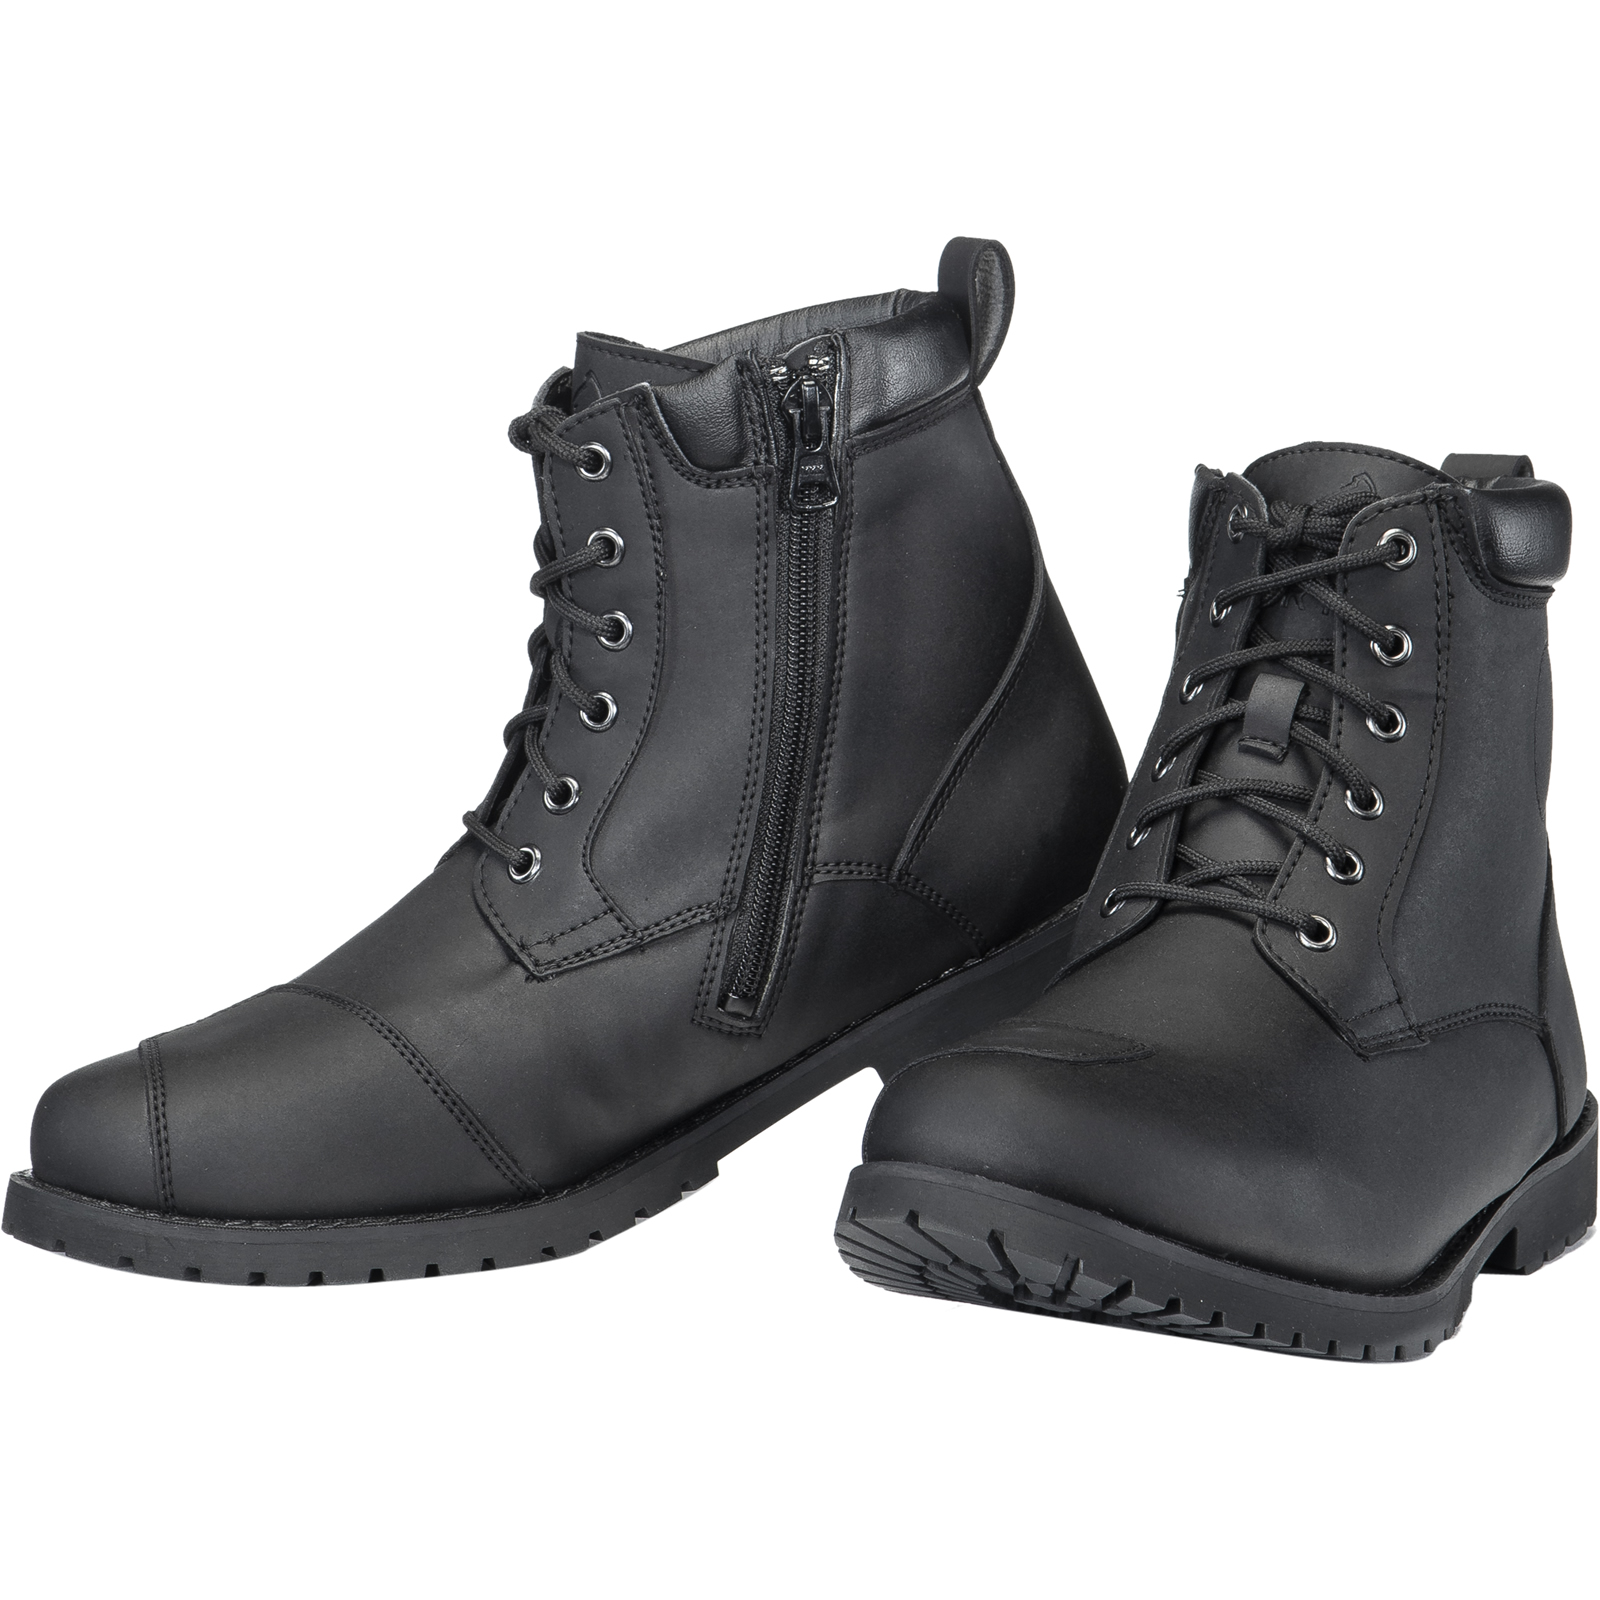 51085-Agrius Victor WP Motorcycle Boots-1